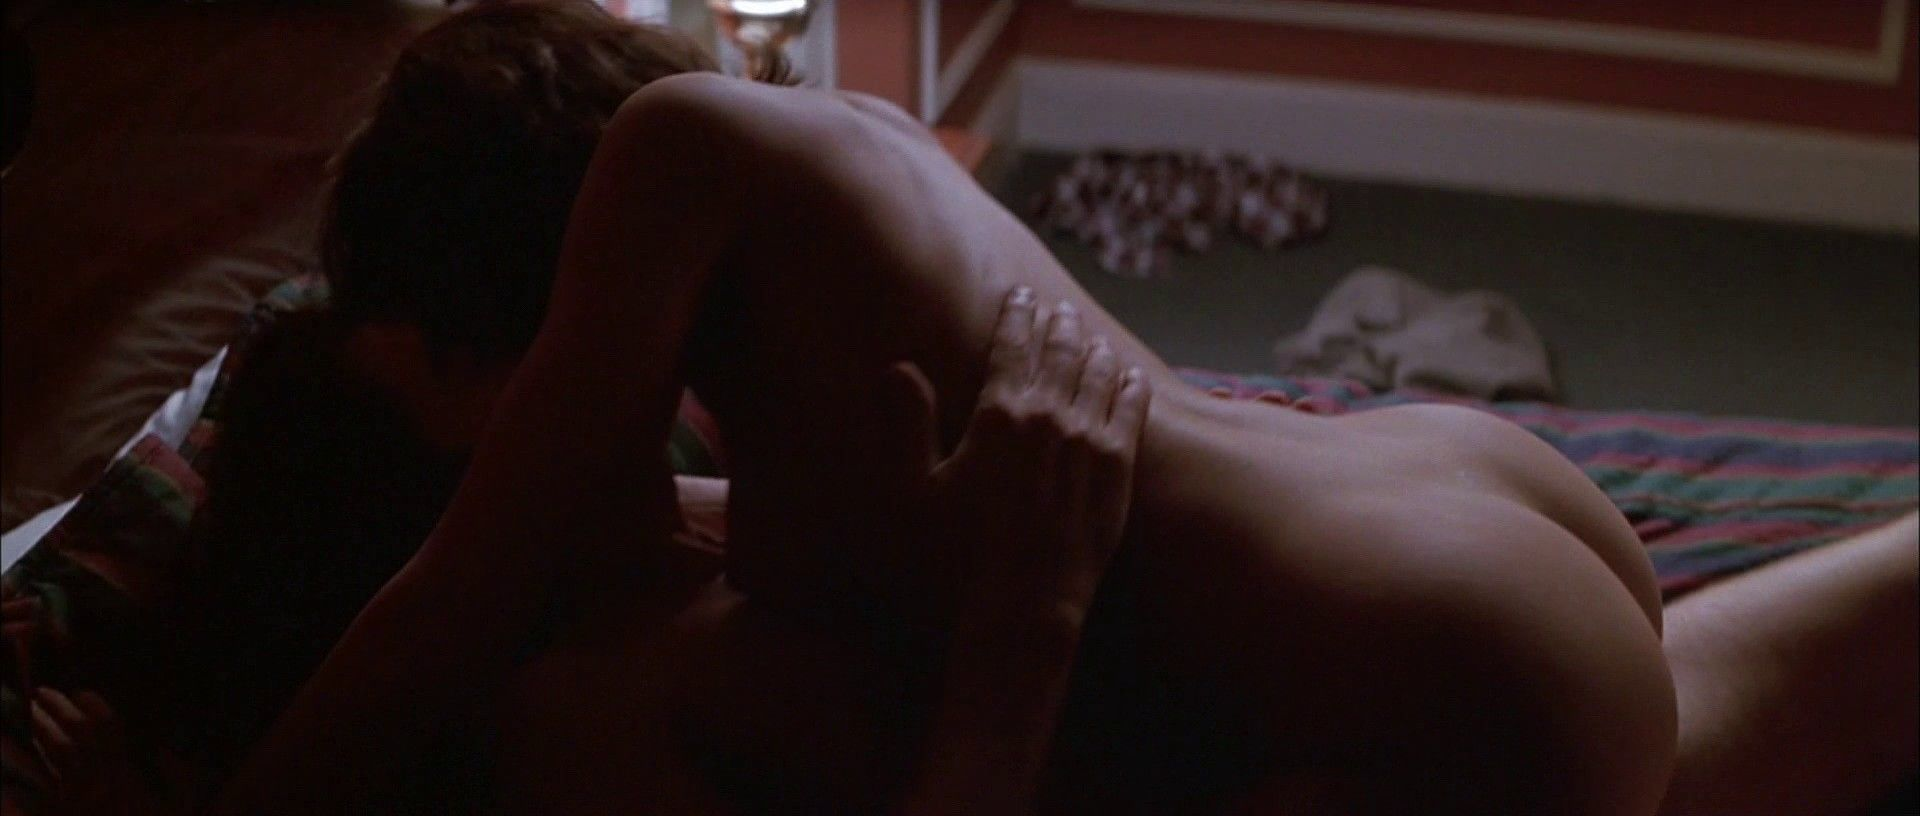 Lovecraft country served up an awkward, hot, insanely real sex scene